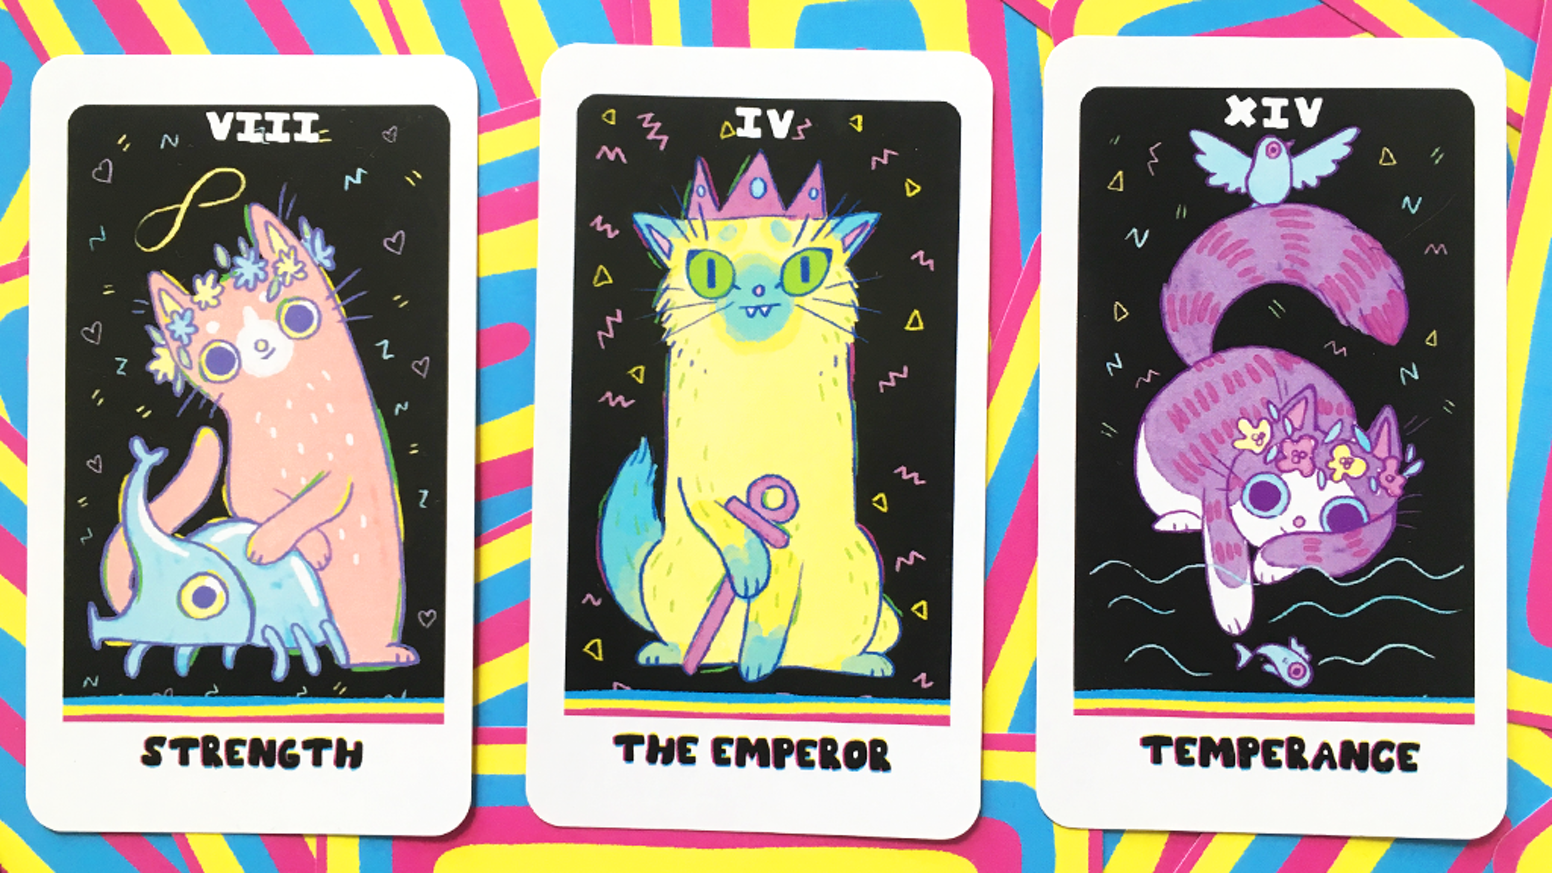 A colorful tarot deck inspired by my favorite things. Cats!